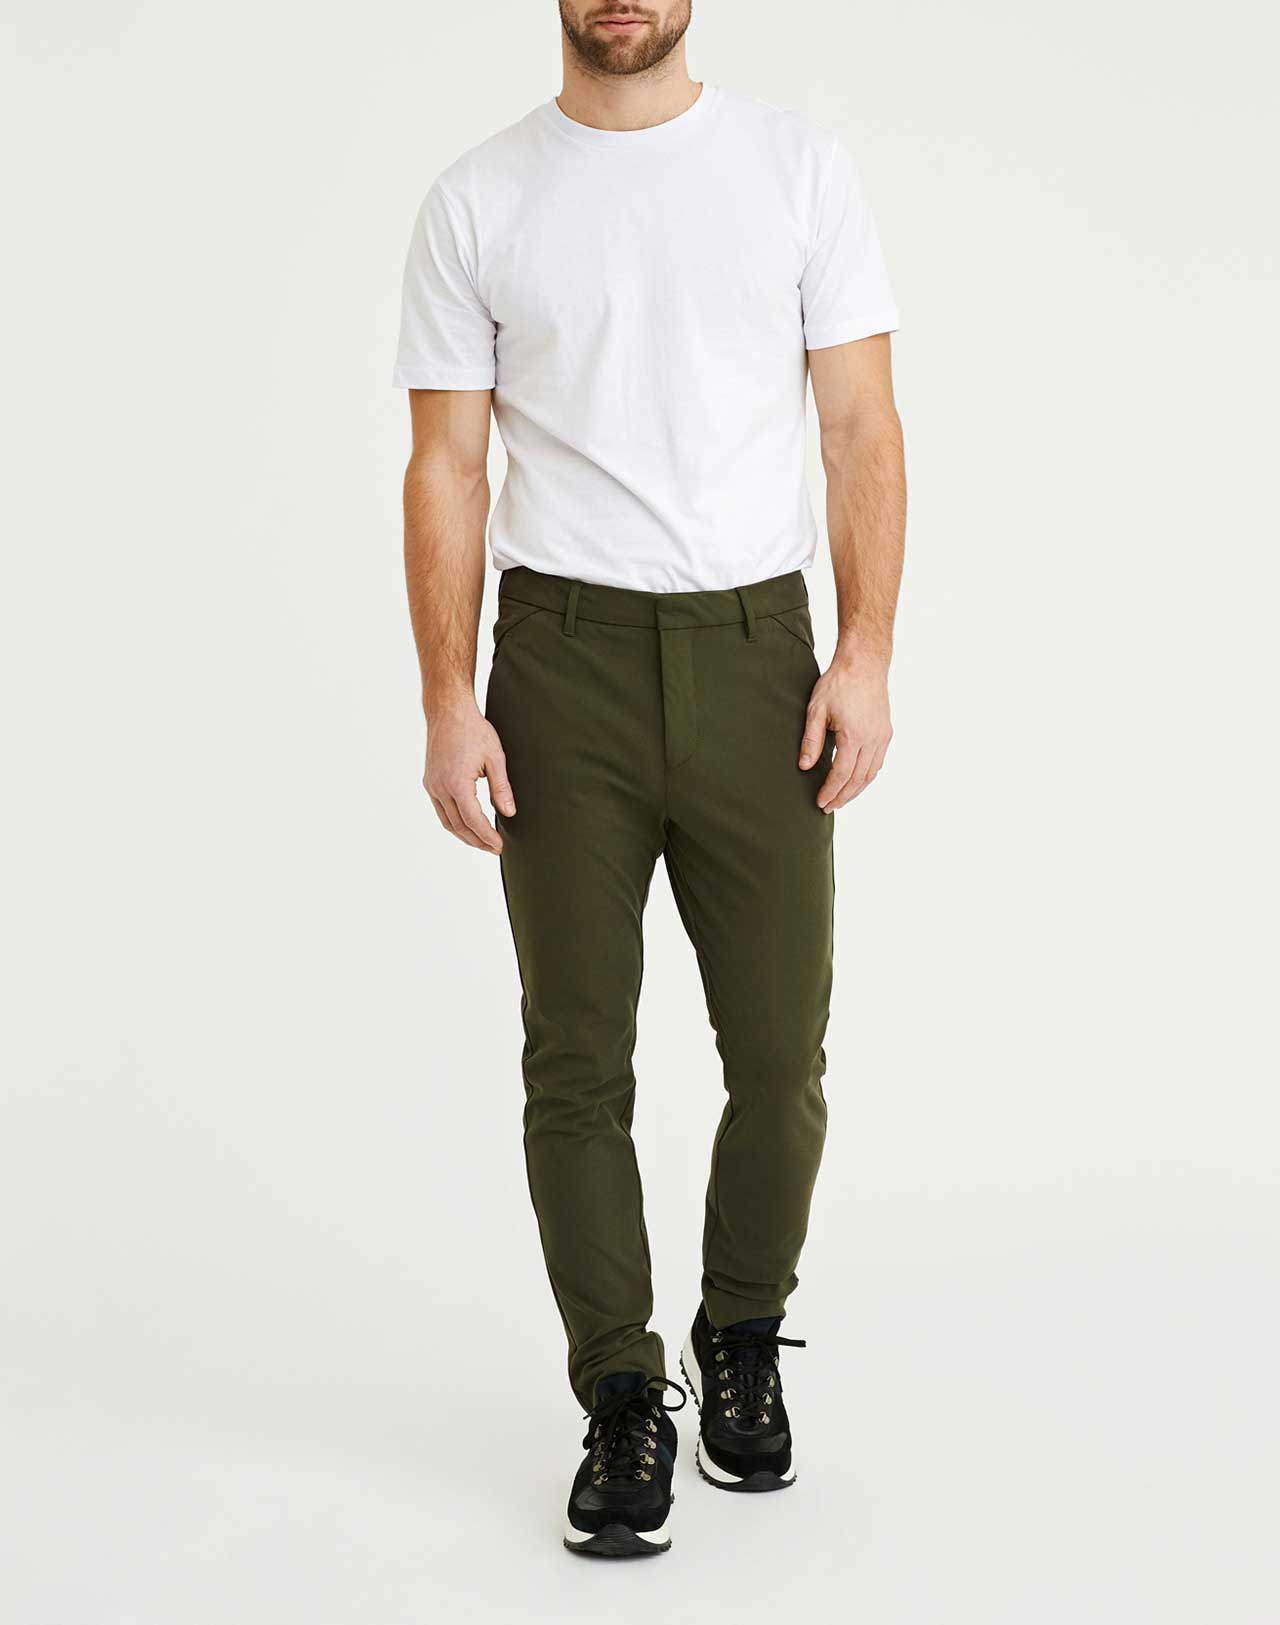 Pantalon Josh Army Plain Units de face